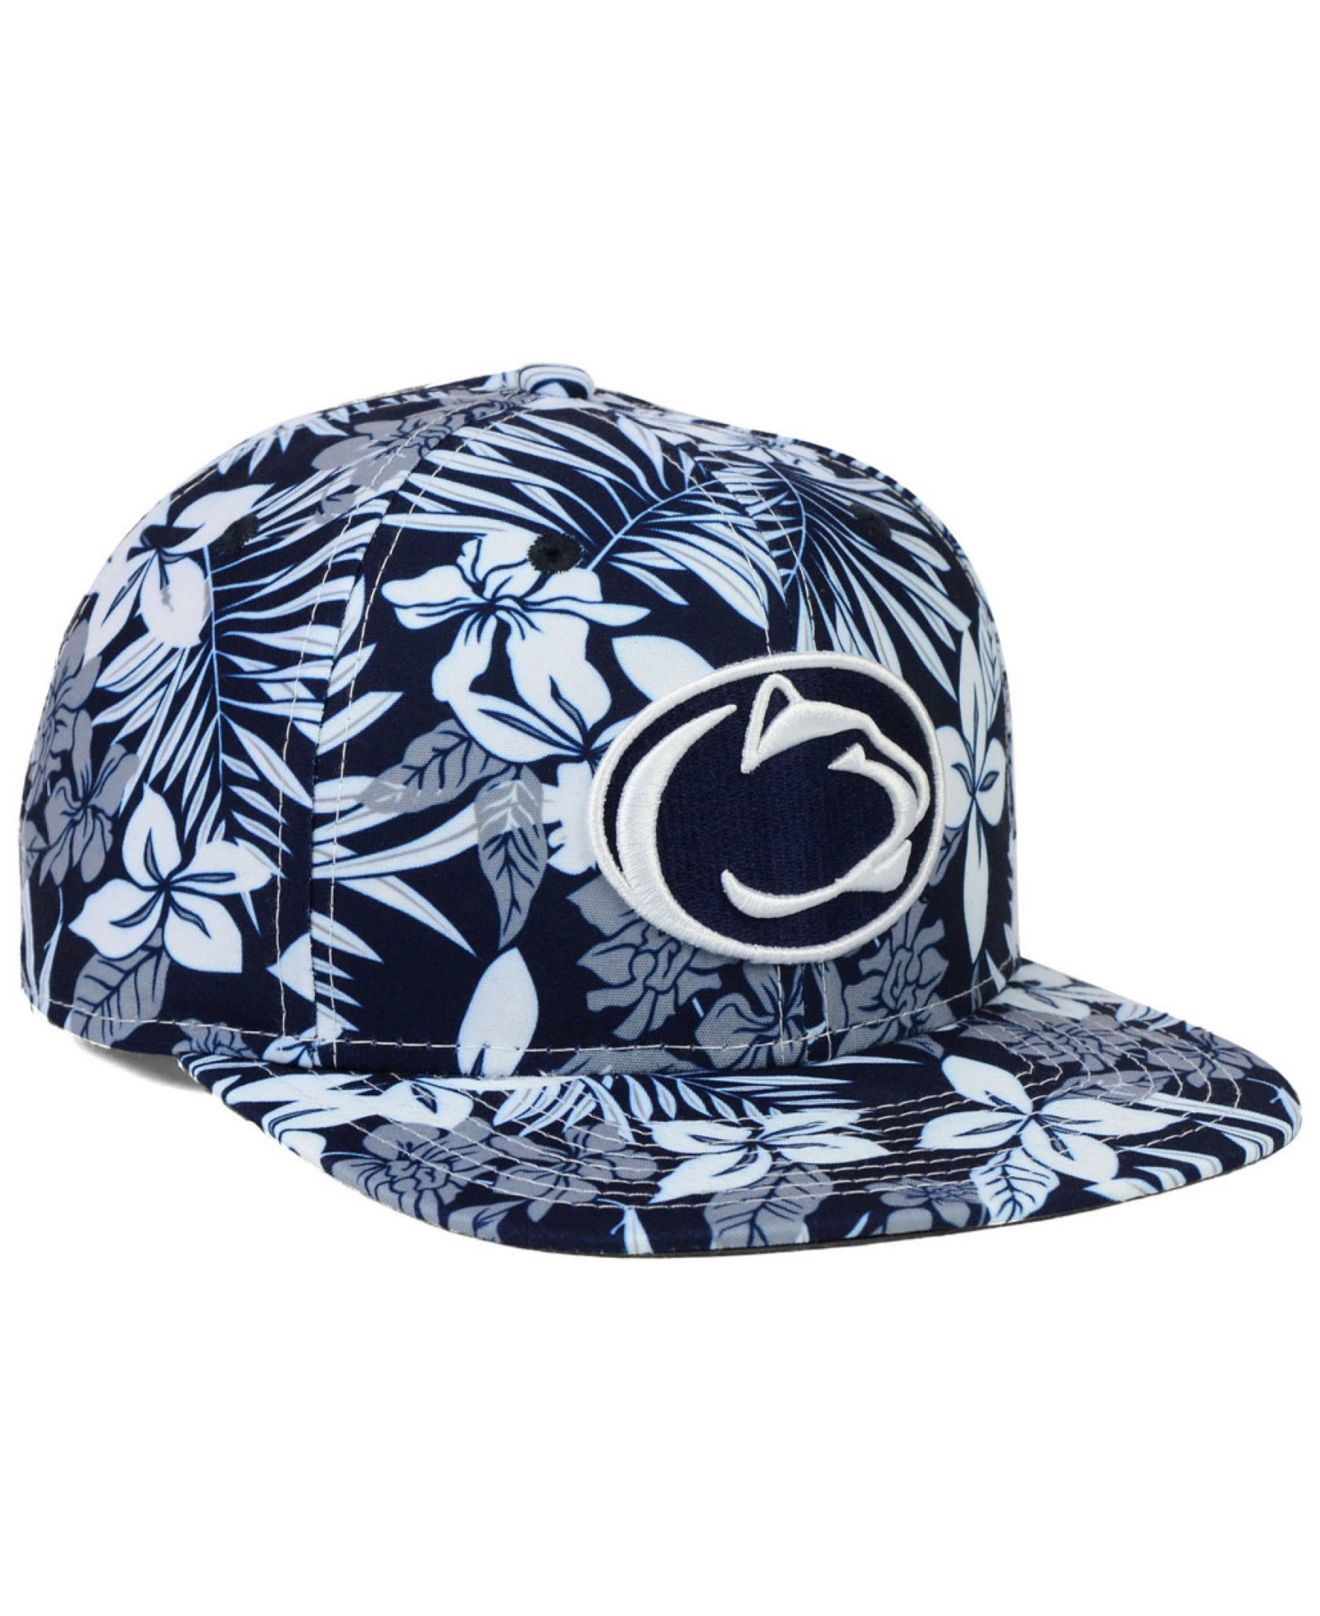 7a346d81e official penn state snapback hat 0f108 3ed79